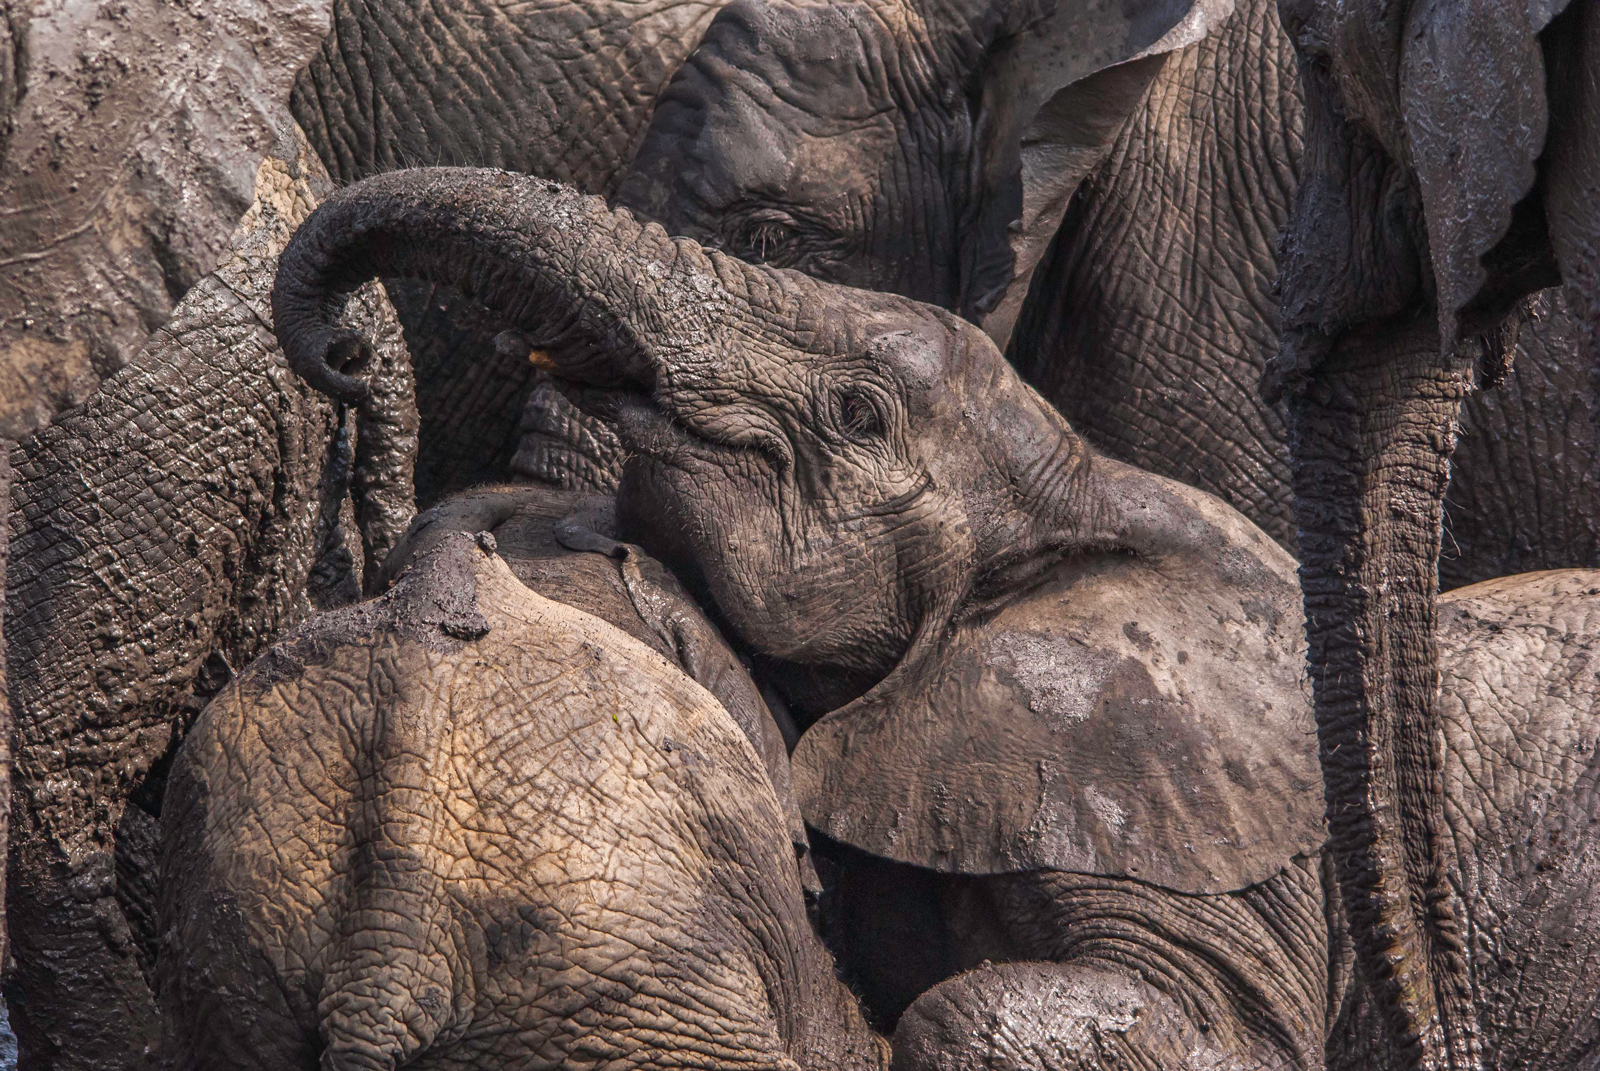 A small family of elephants enjoys a mud bath in a dwindling waterhole in Kruger National Park, South Africa ©Bert Fourie